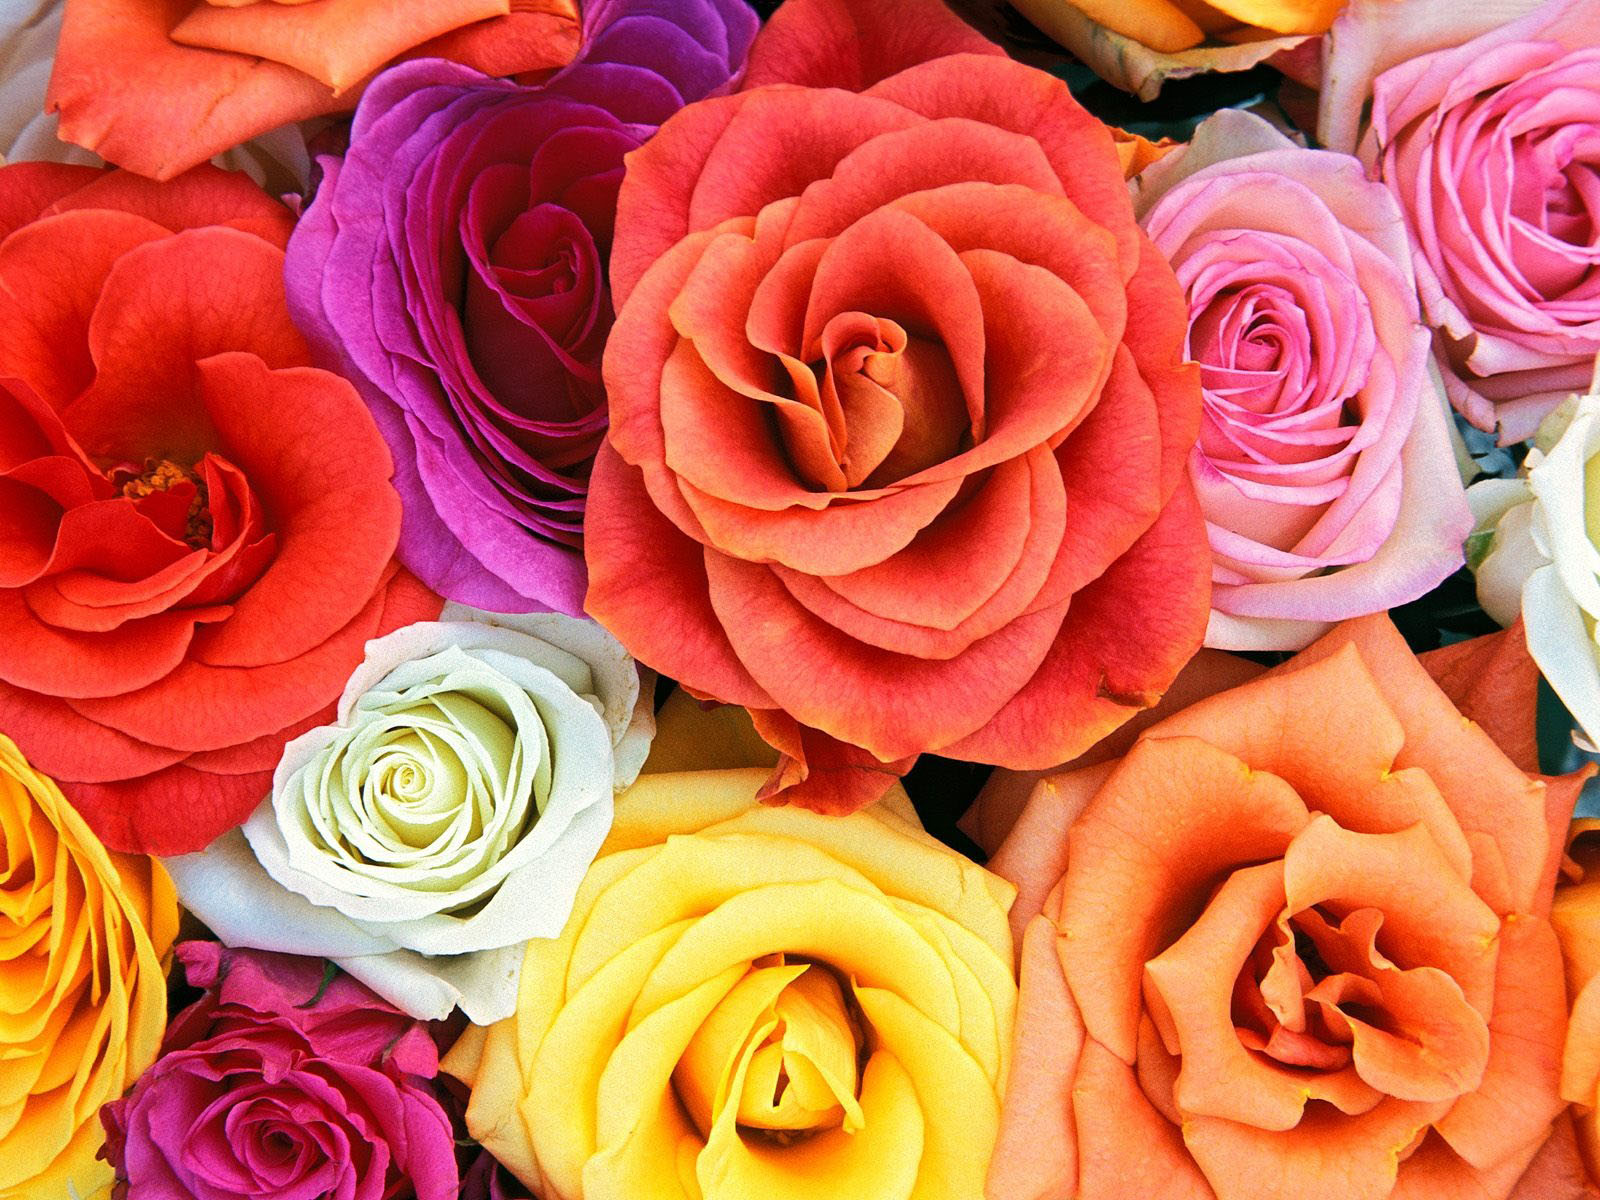 Color roses wallpaper hd wallpaper - Bunch of roses hd images ...